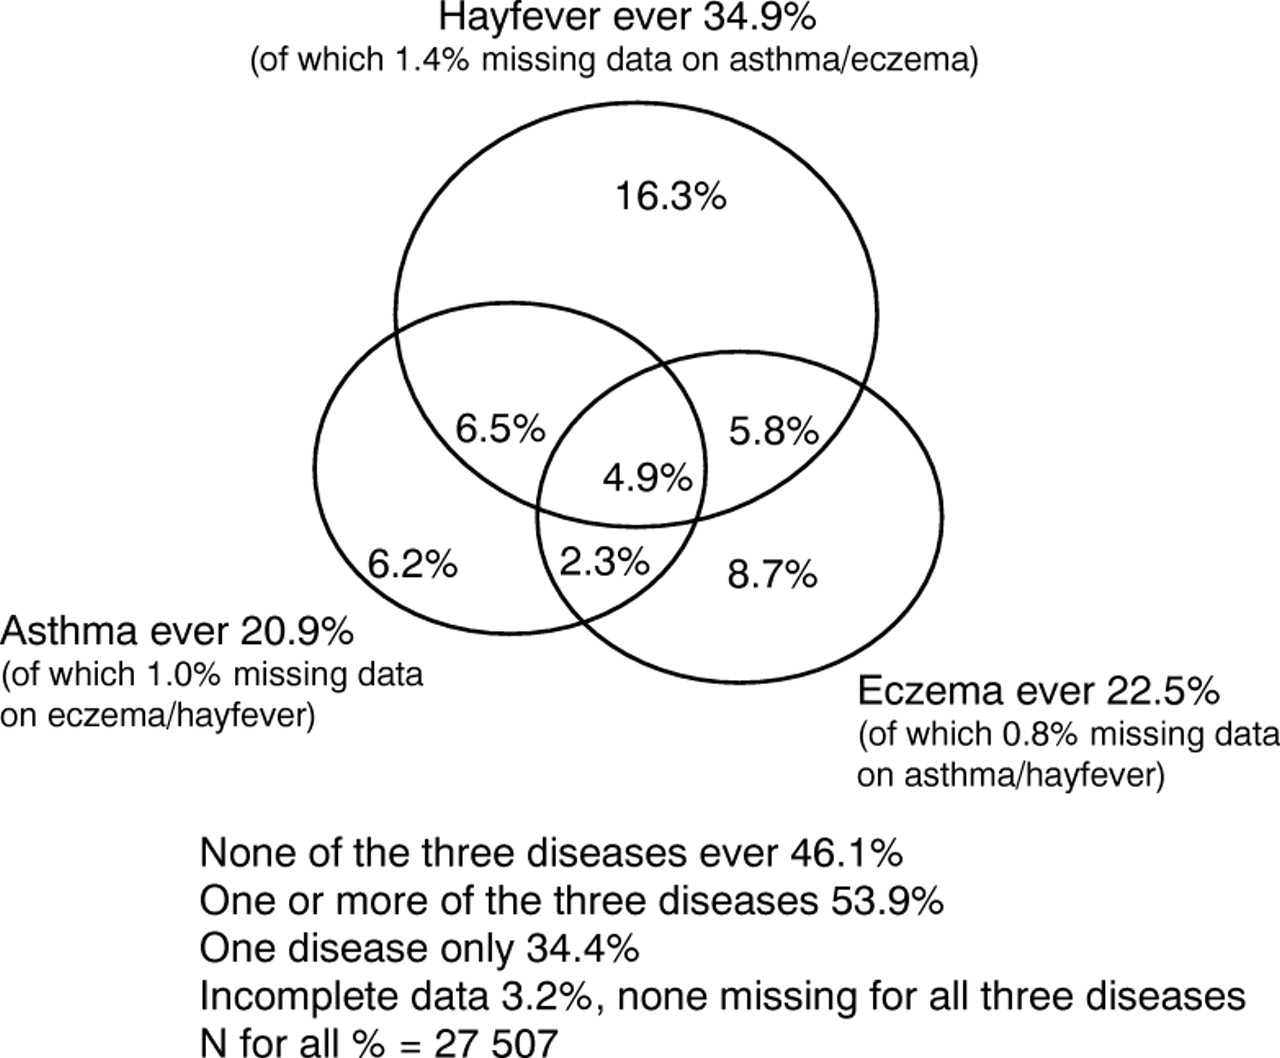 hay fever, eczema, and wheeze: a nationwide uk study (isaac